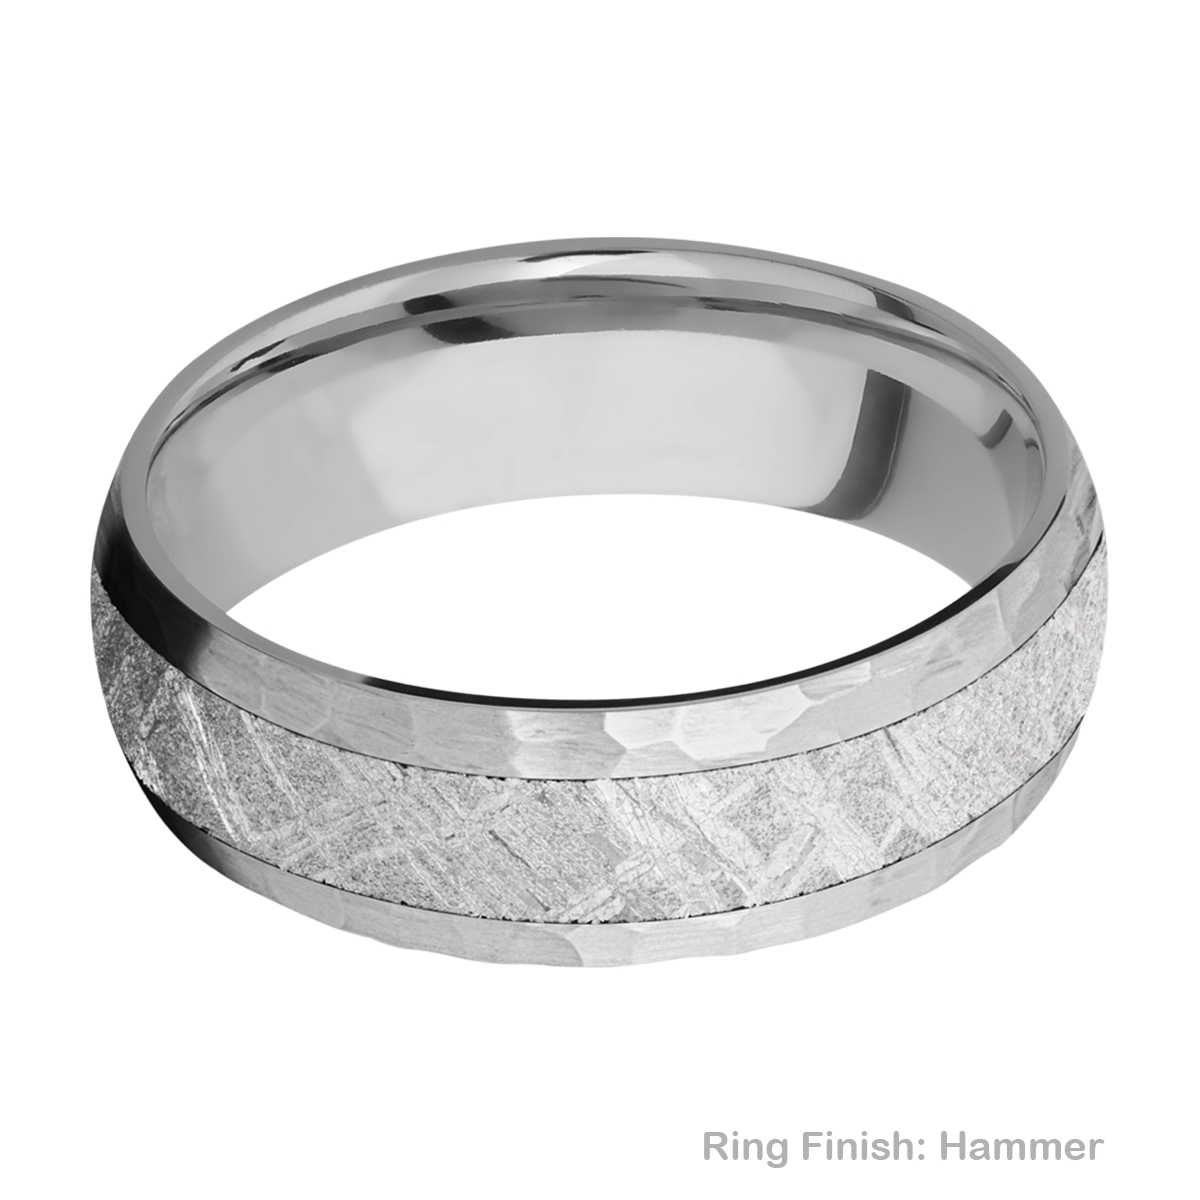 Lashbrook 7D14/METEORITE Titanium Wedding Ring or Band Alternative View 8